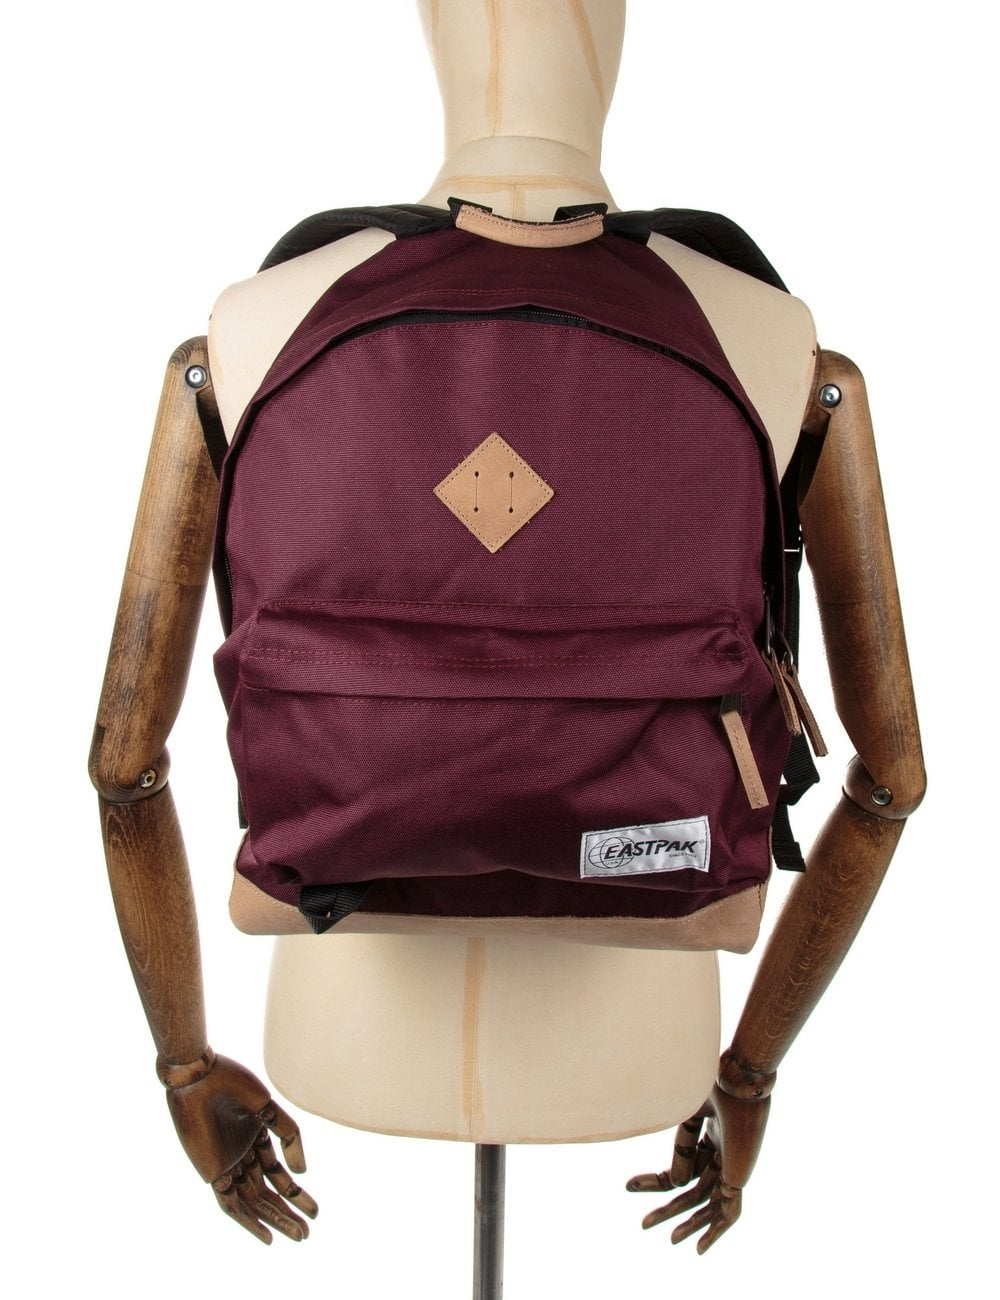 949412545 Eastpak Wyoming Backpack - Into The Out Burgundy - Bag Shop from Fat ...